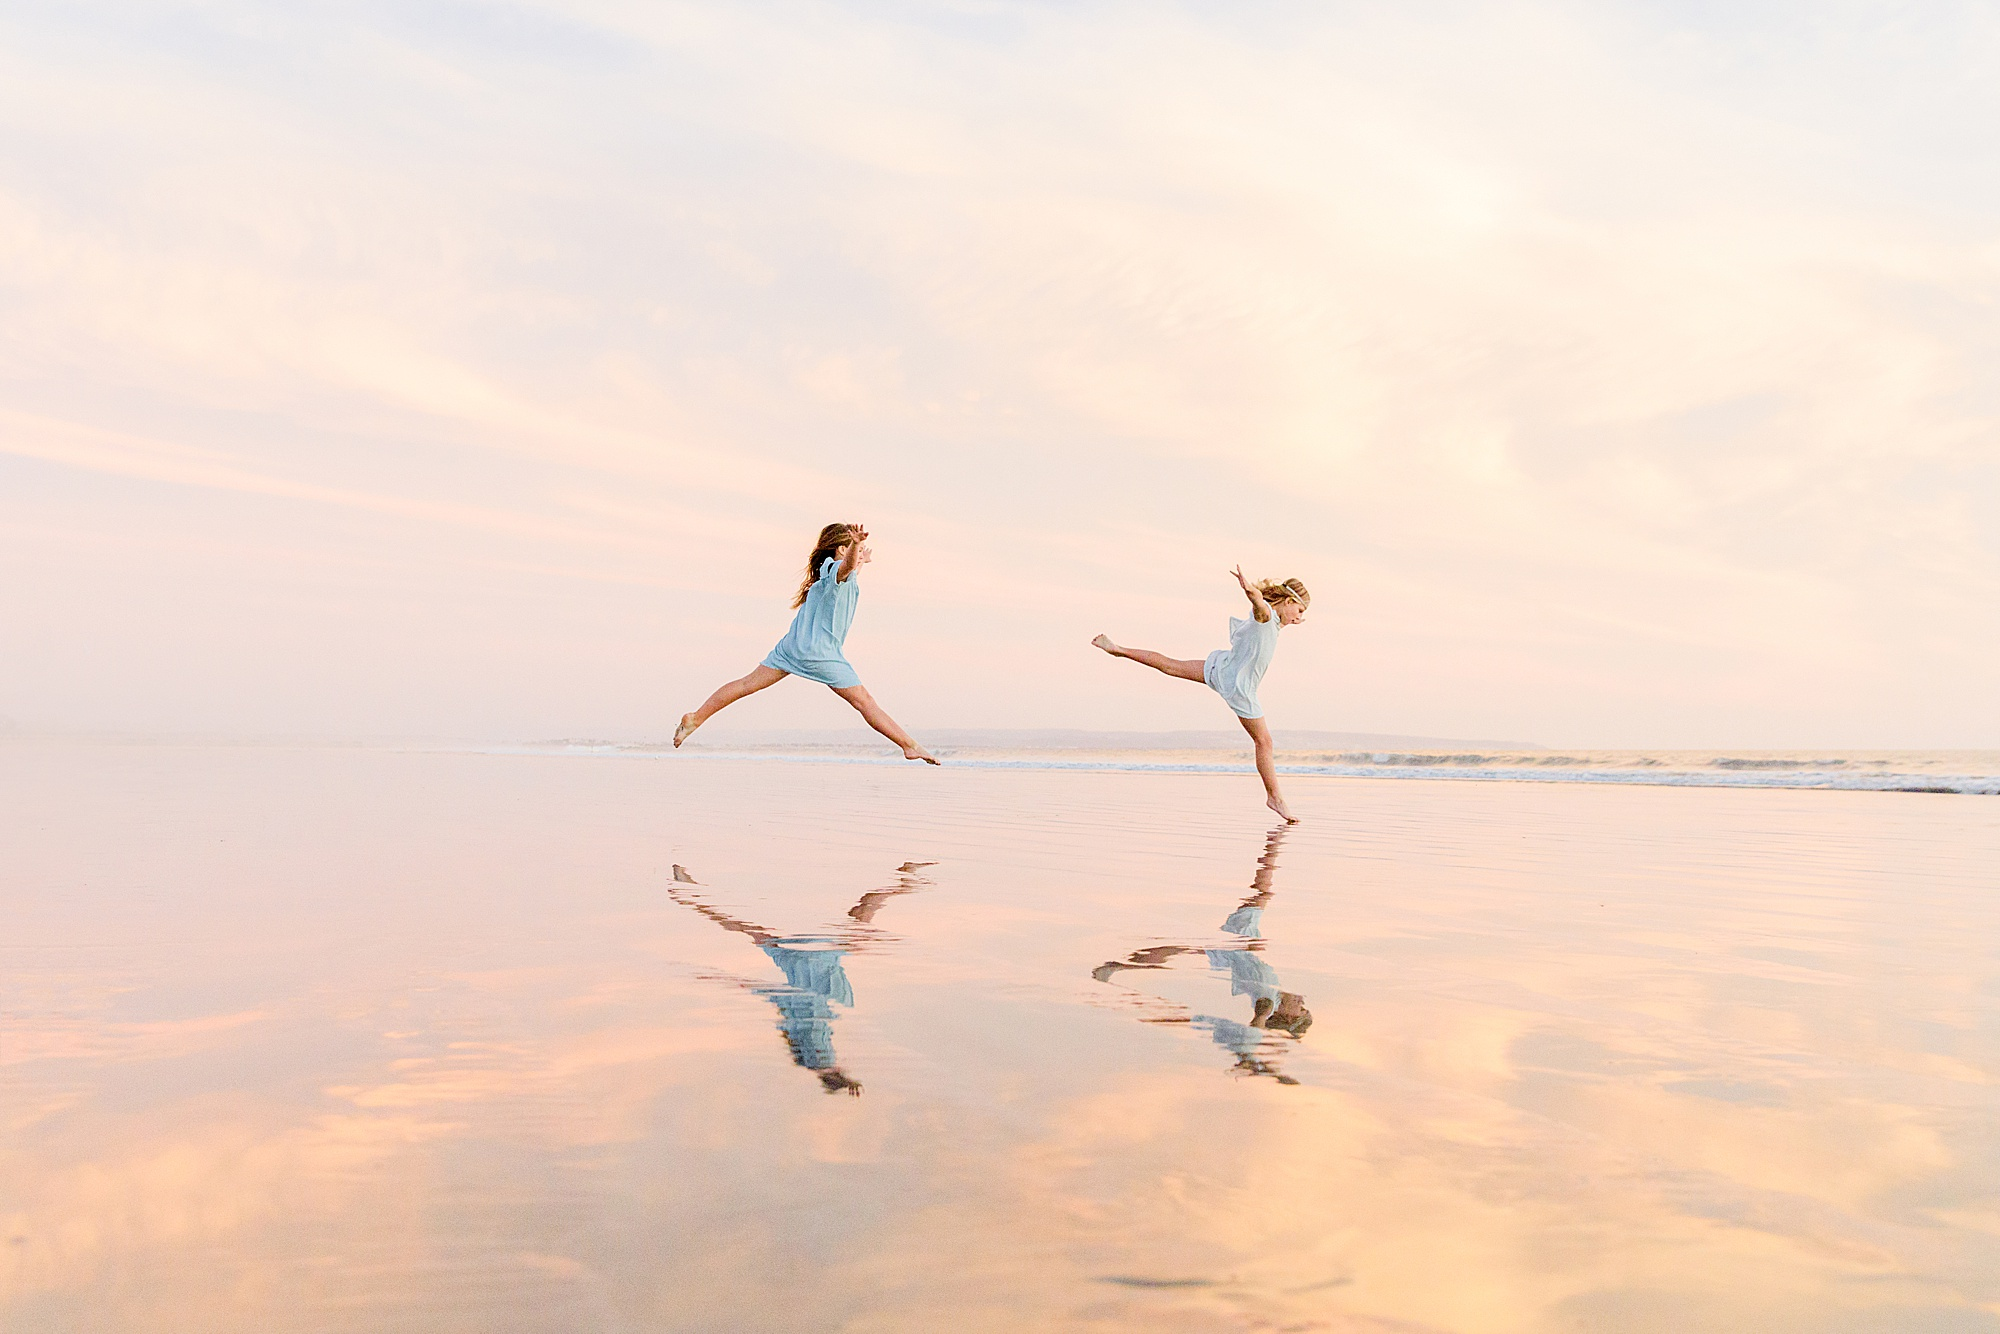 Dancing on the Beach | San Diego Beach Photography